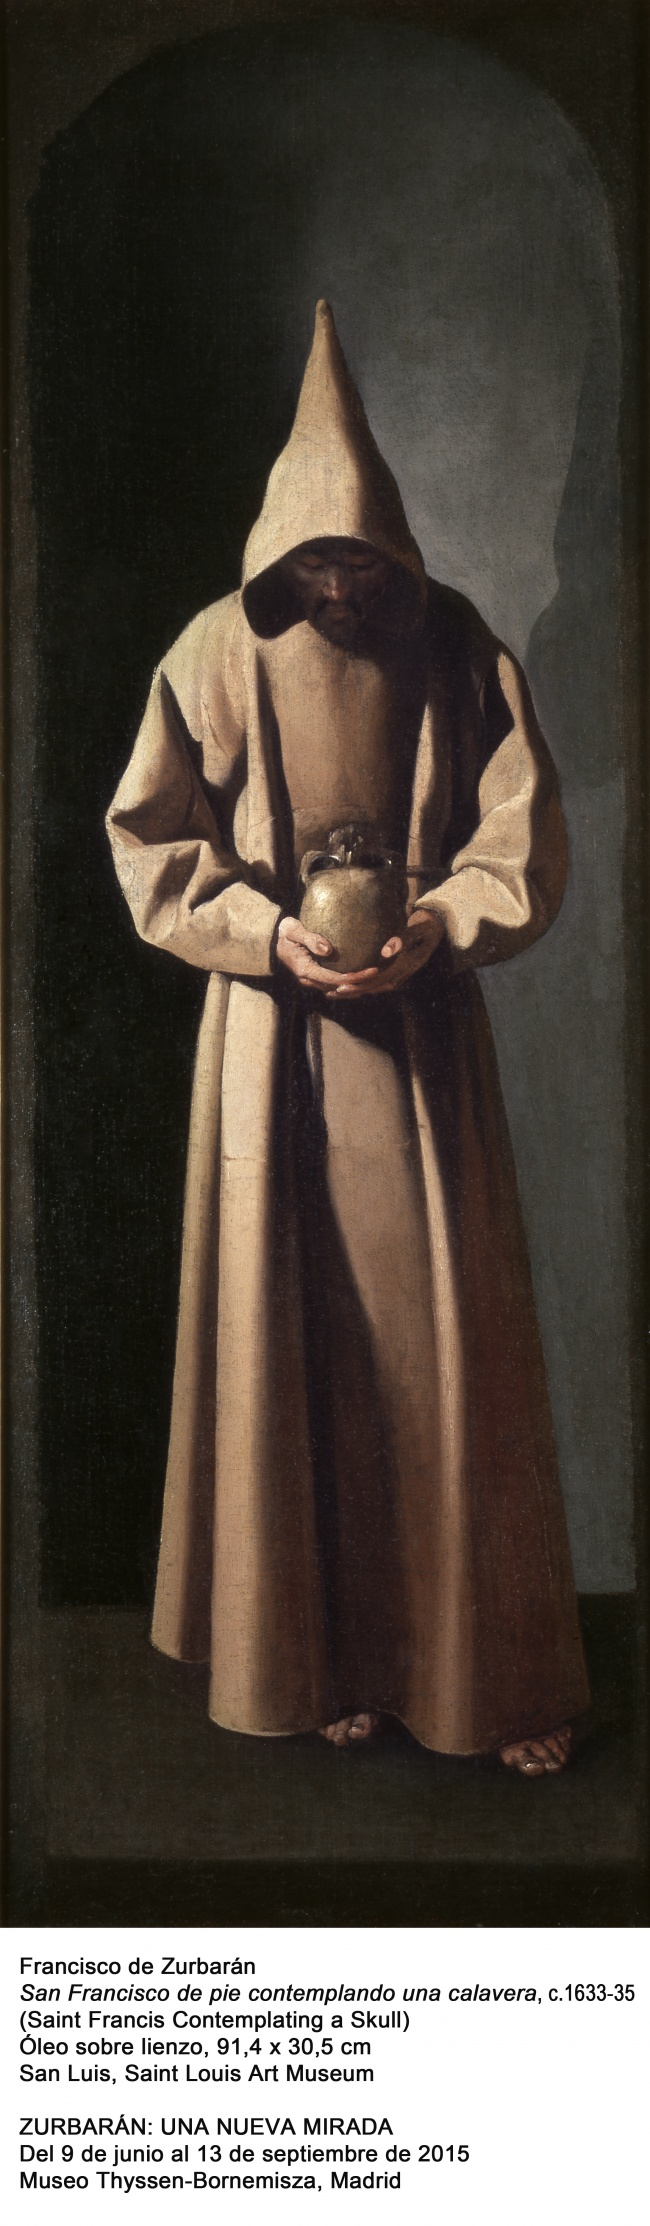 Francisco de Zurbarán, Spanish, 1598–1664; St. Francis Contemplating a Skull, c.1635; oil on canvas; 36 x 12 in. (91.4 x 30.5 cm); Saint Louis Art Museum, Museum Purchase 47:1941